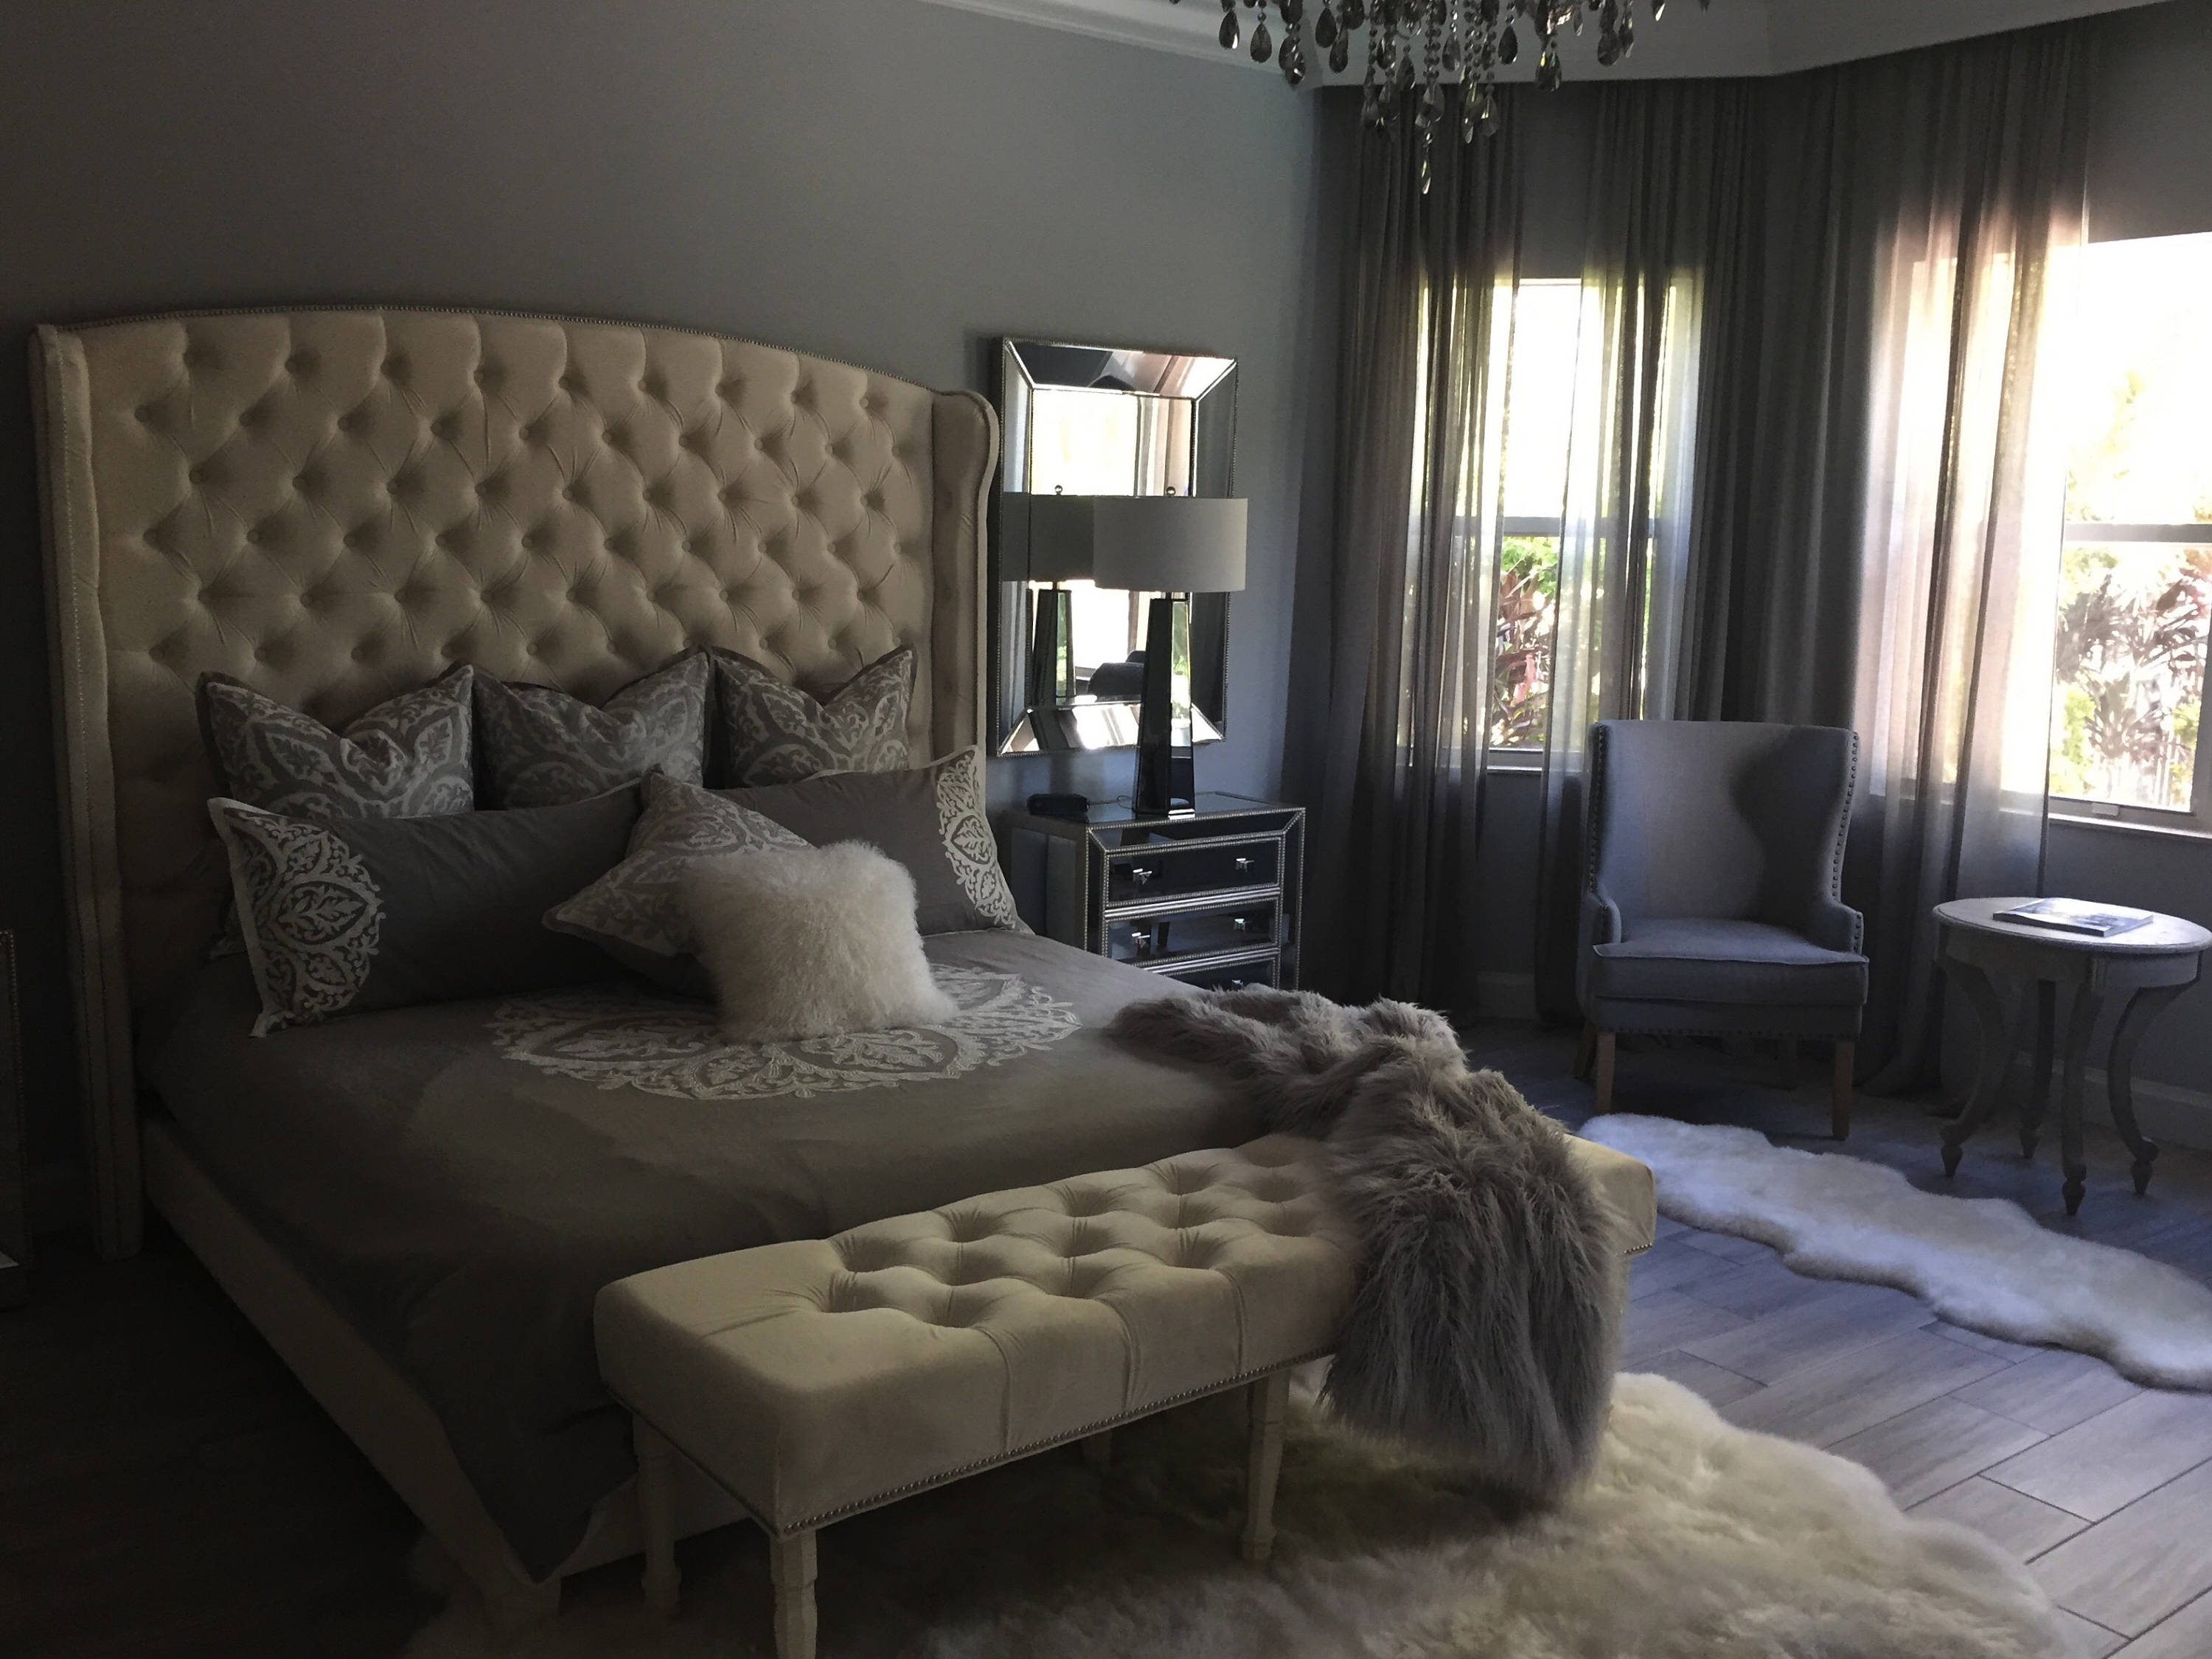 Diamond Tufted Slightly Arched Wingback Bed And Bench Set - Diamond tufted steel grey velvet wingback headboard king extra tall